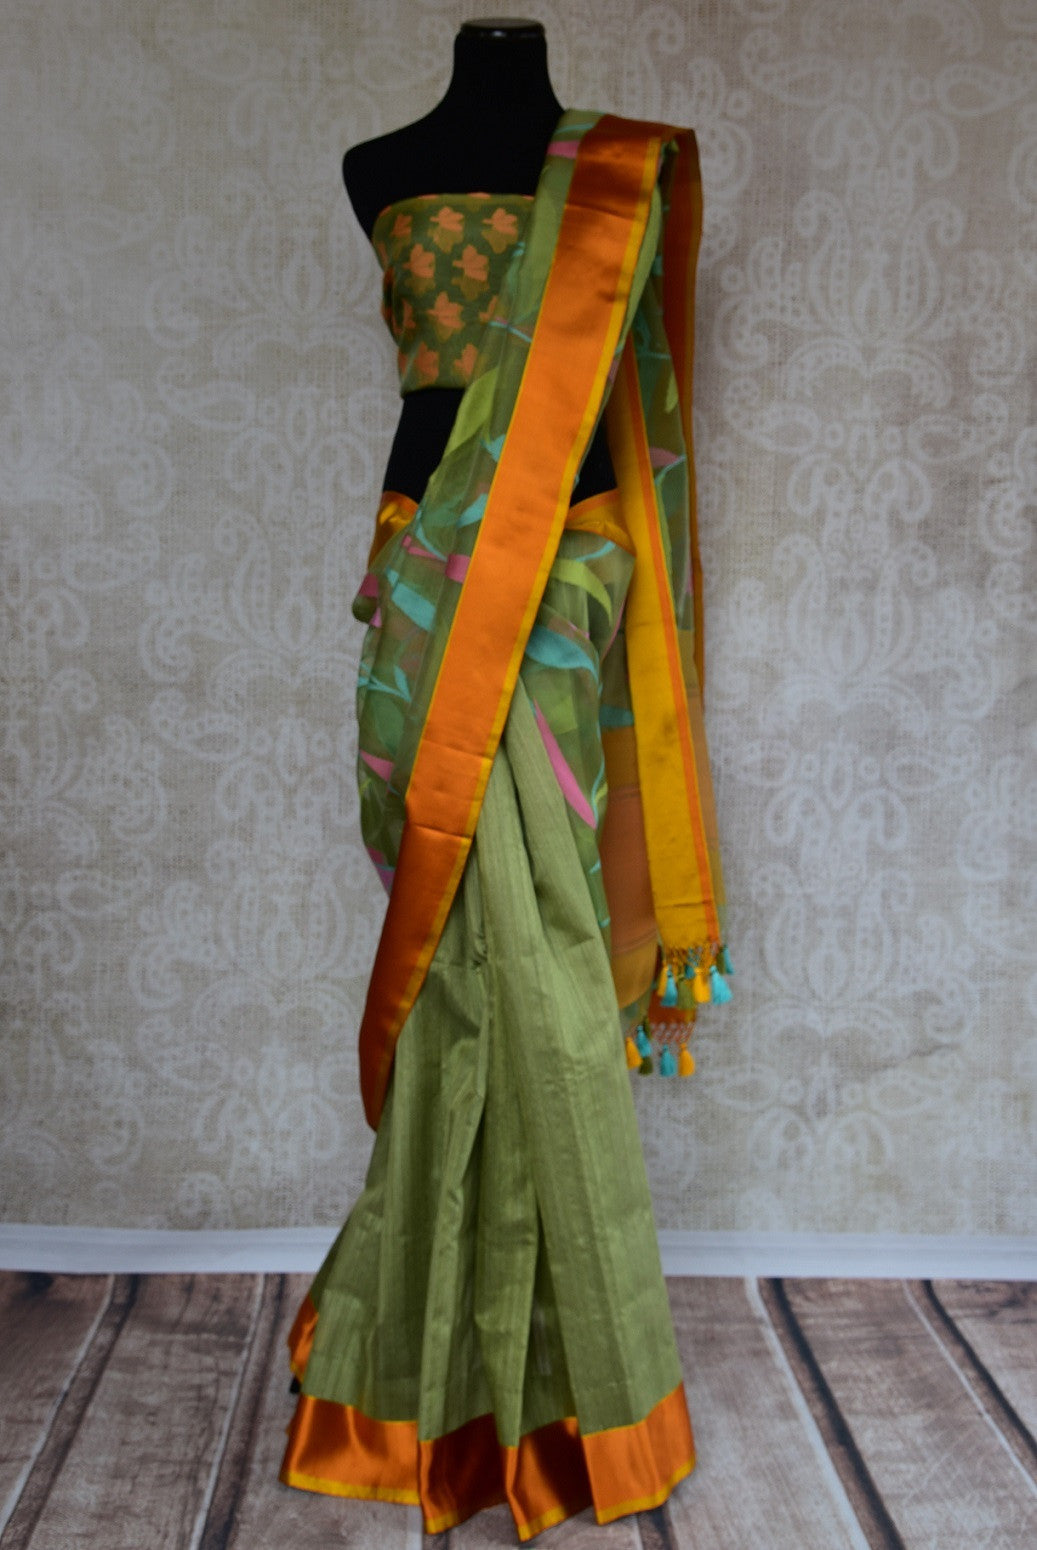 90C107 Half matka, half organza, kota satin Banarasi saree. The green floral saree with orange-gold border, available online at our ethnic wear store in USA, is ideal for ethnic festivities